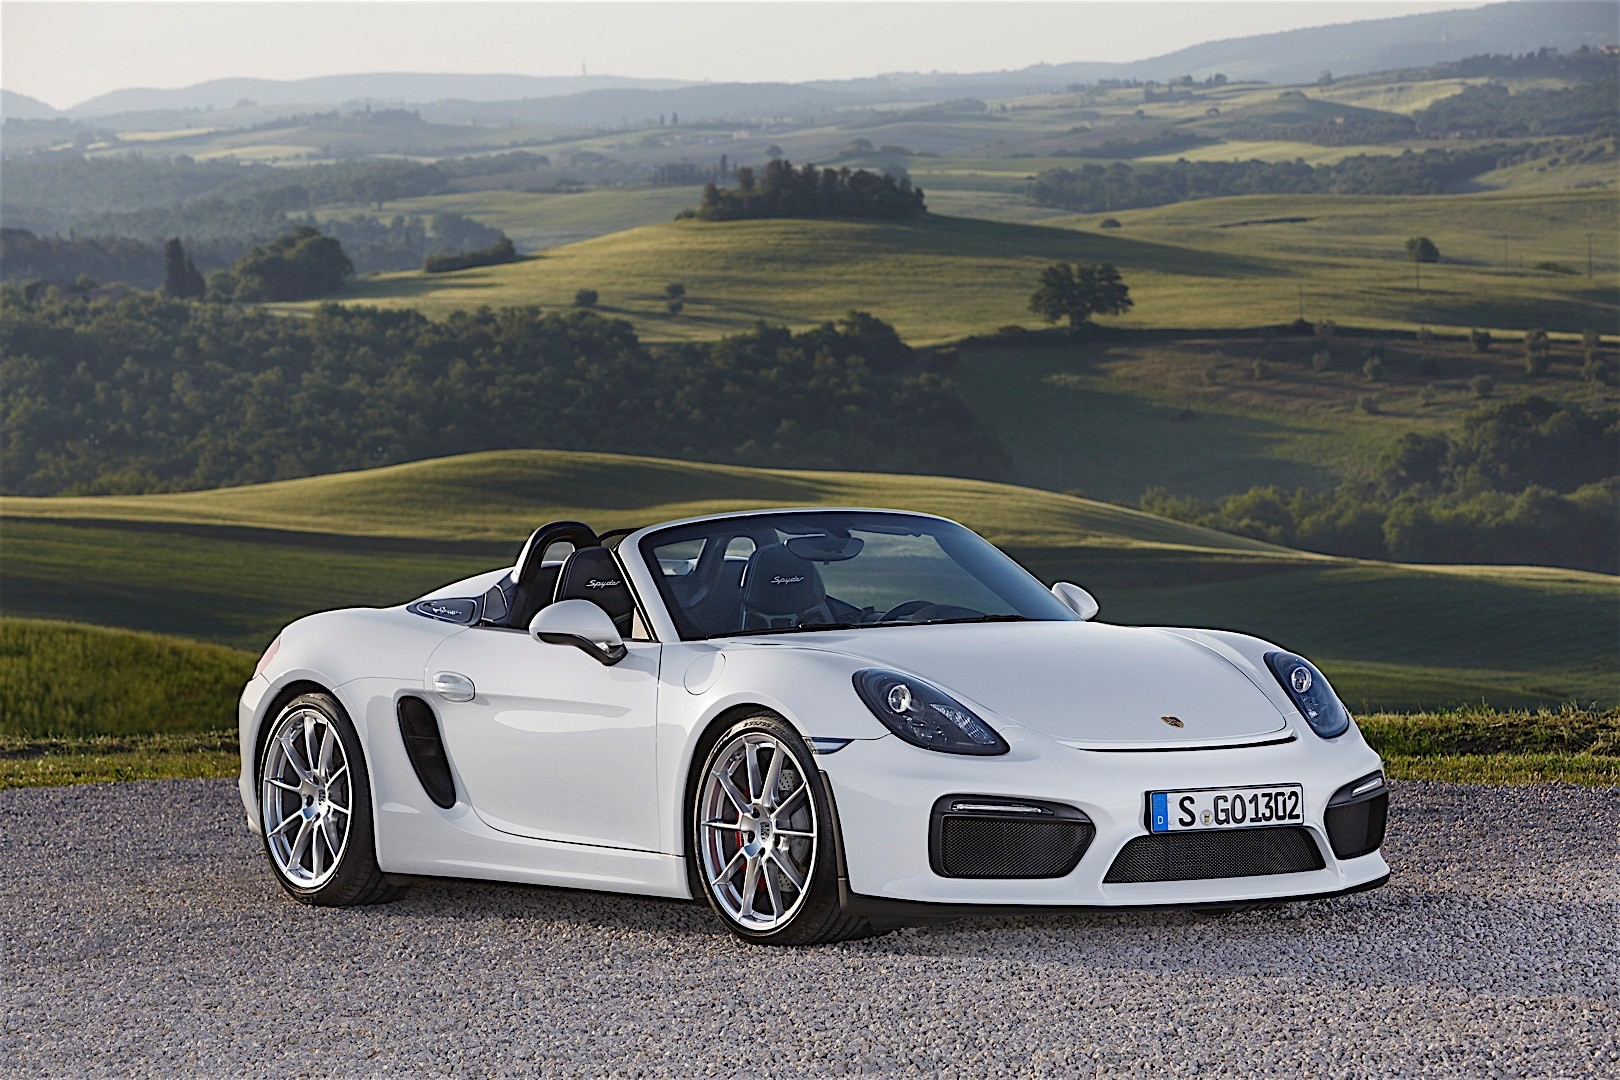 Porsche Boxster Spyder 2016 on tuning car radio